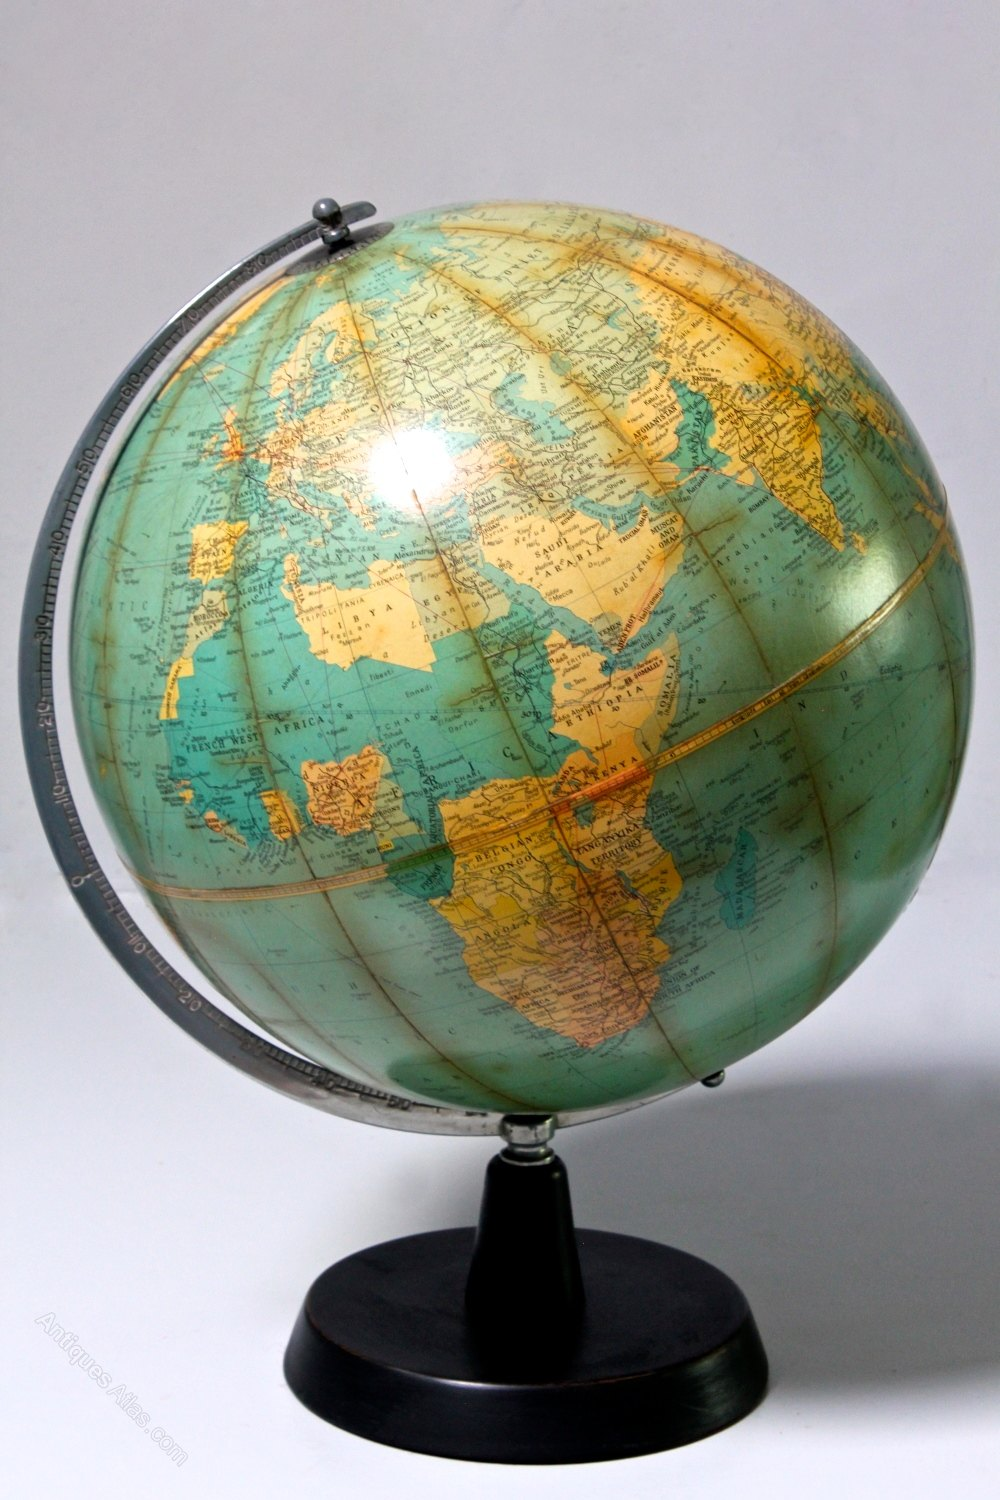 from Grayson dating old globes